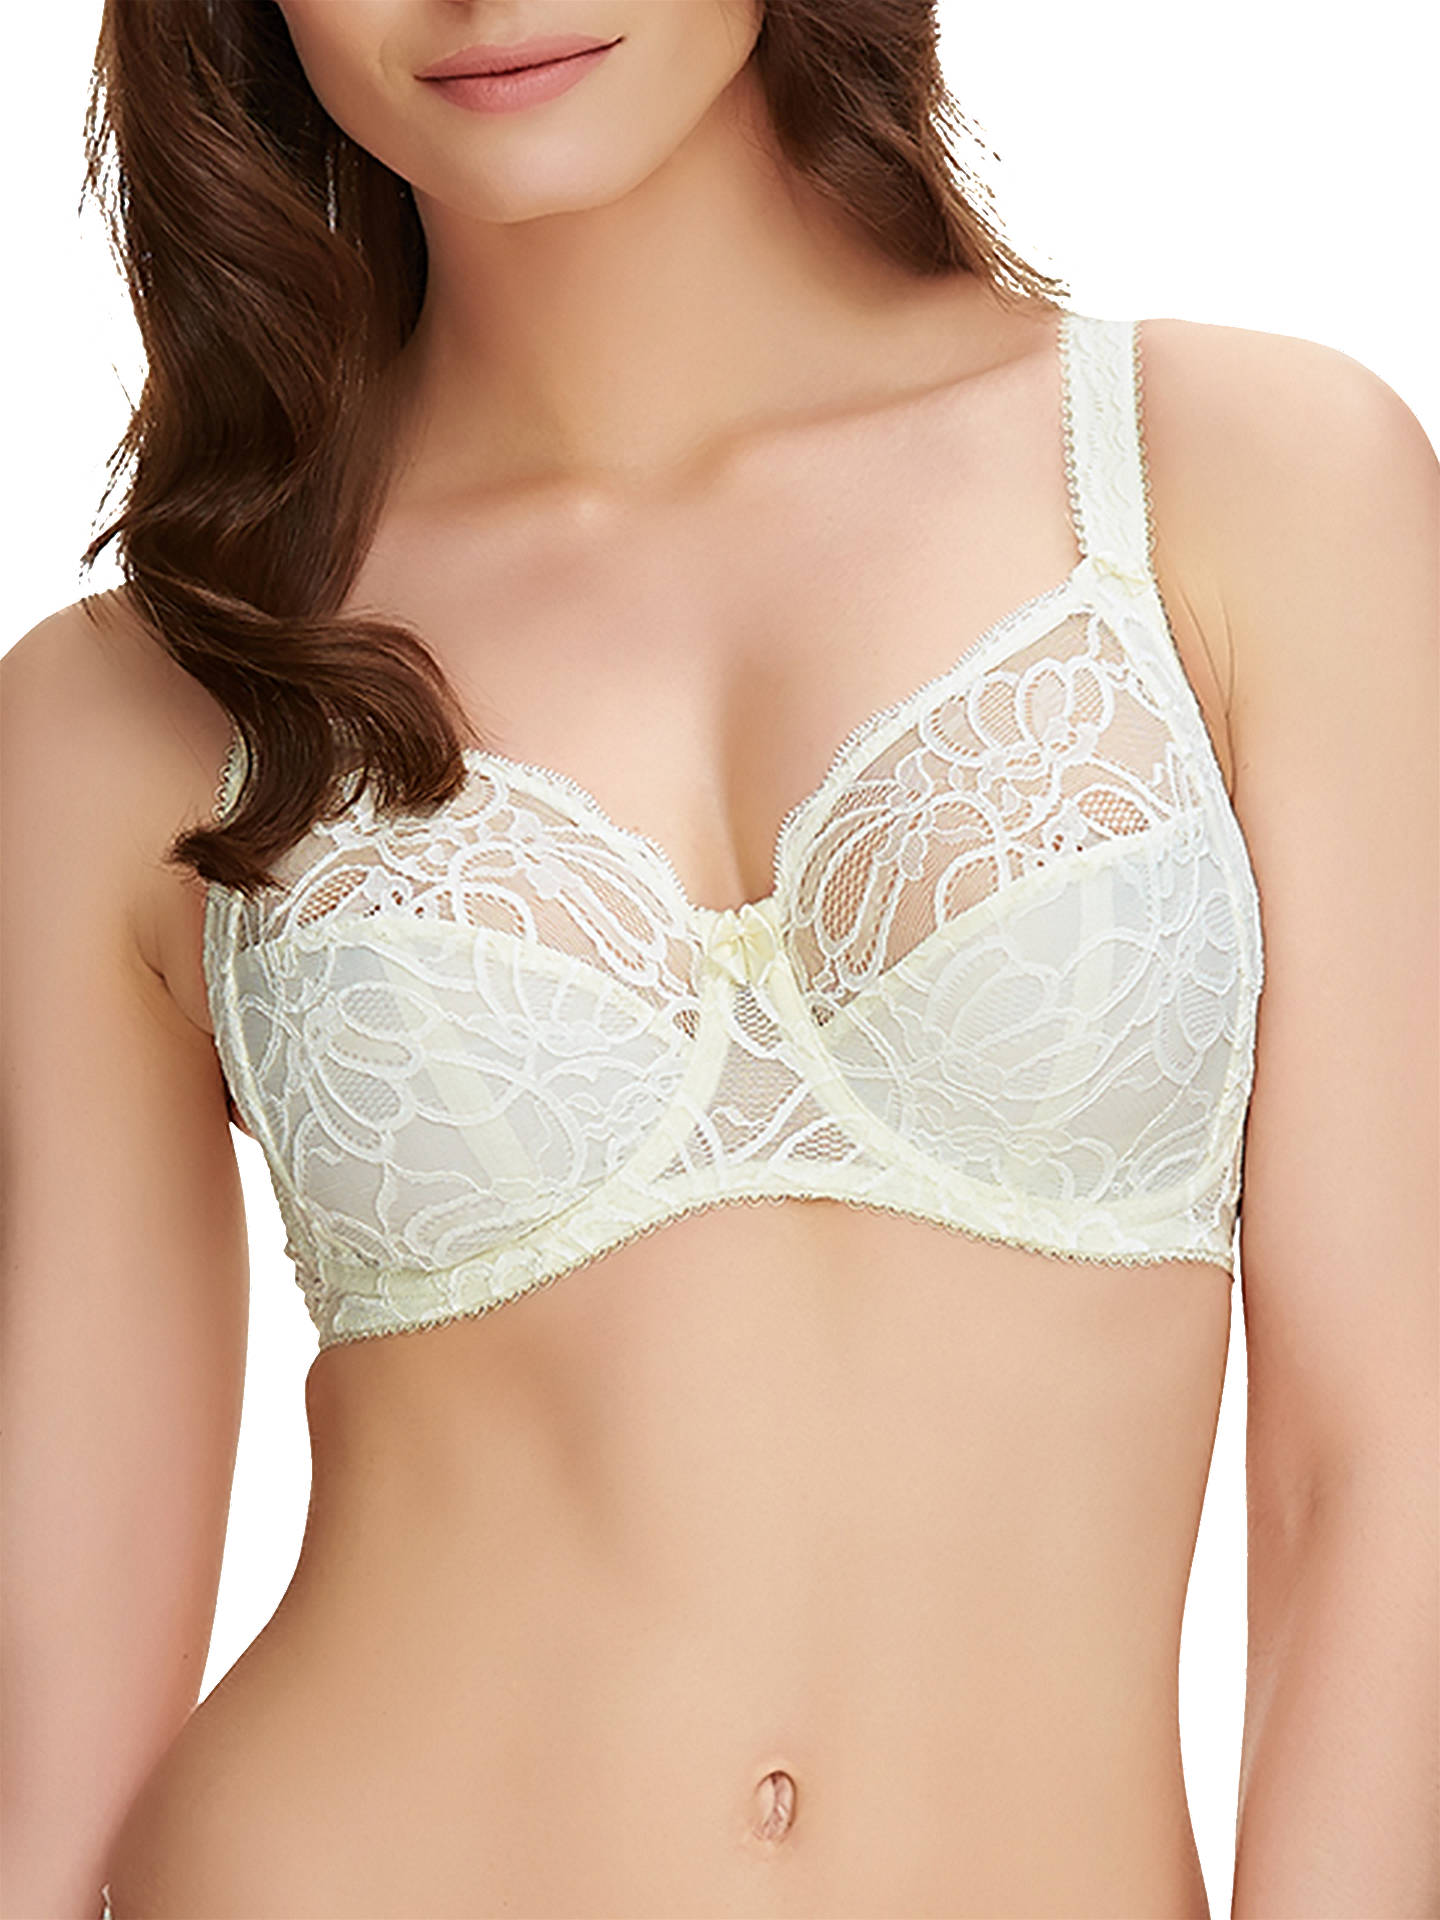 dab2af6a65d Buy Fantasie Jacqueline Lace Full Cup Bra, Ivory, 30DD Online at  johnlewis.com ...